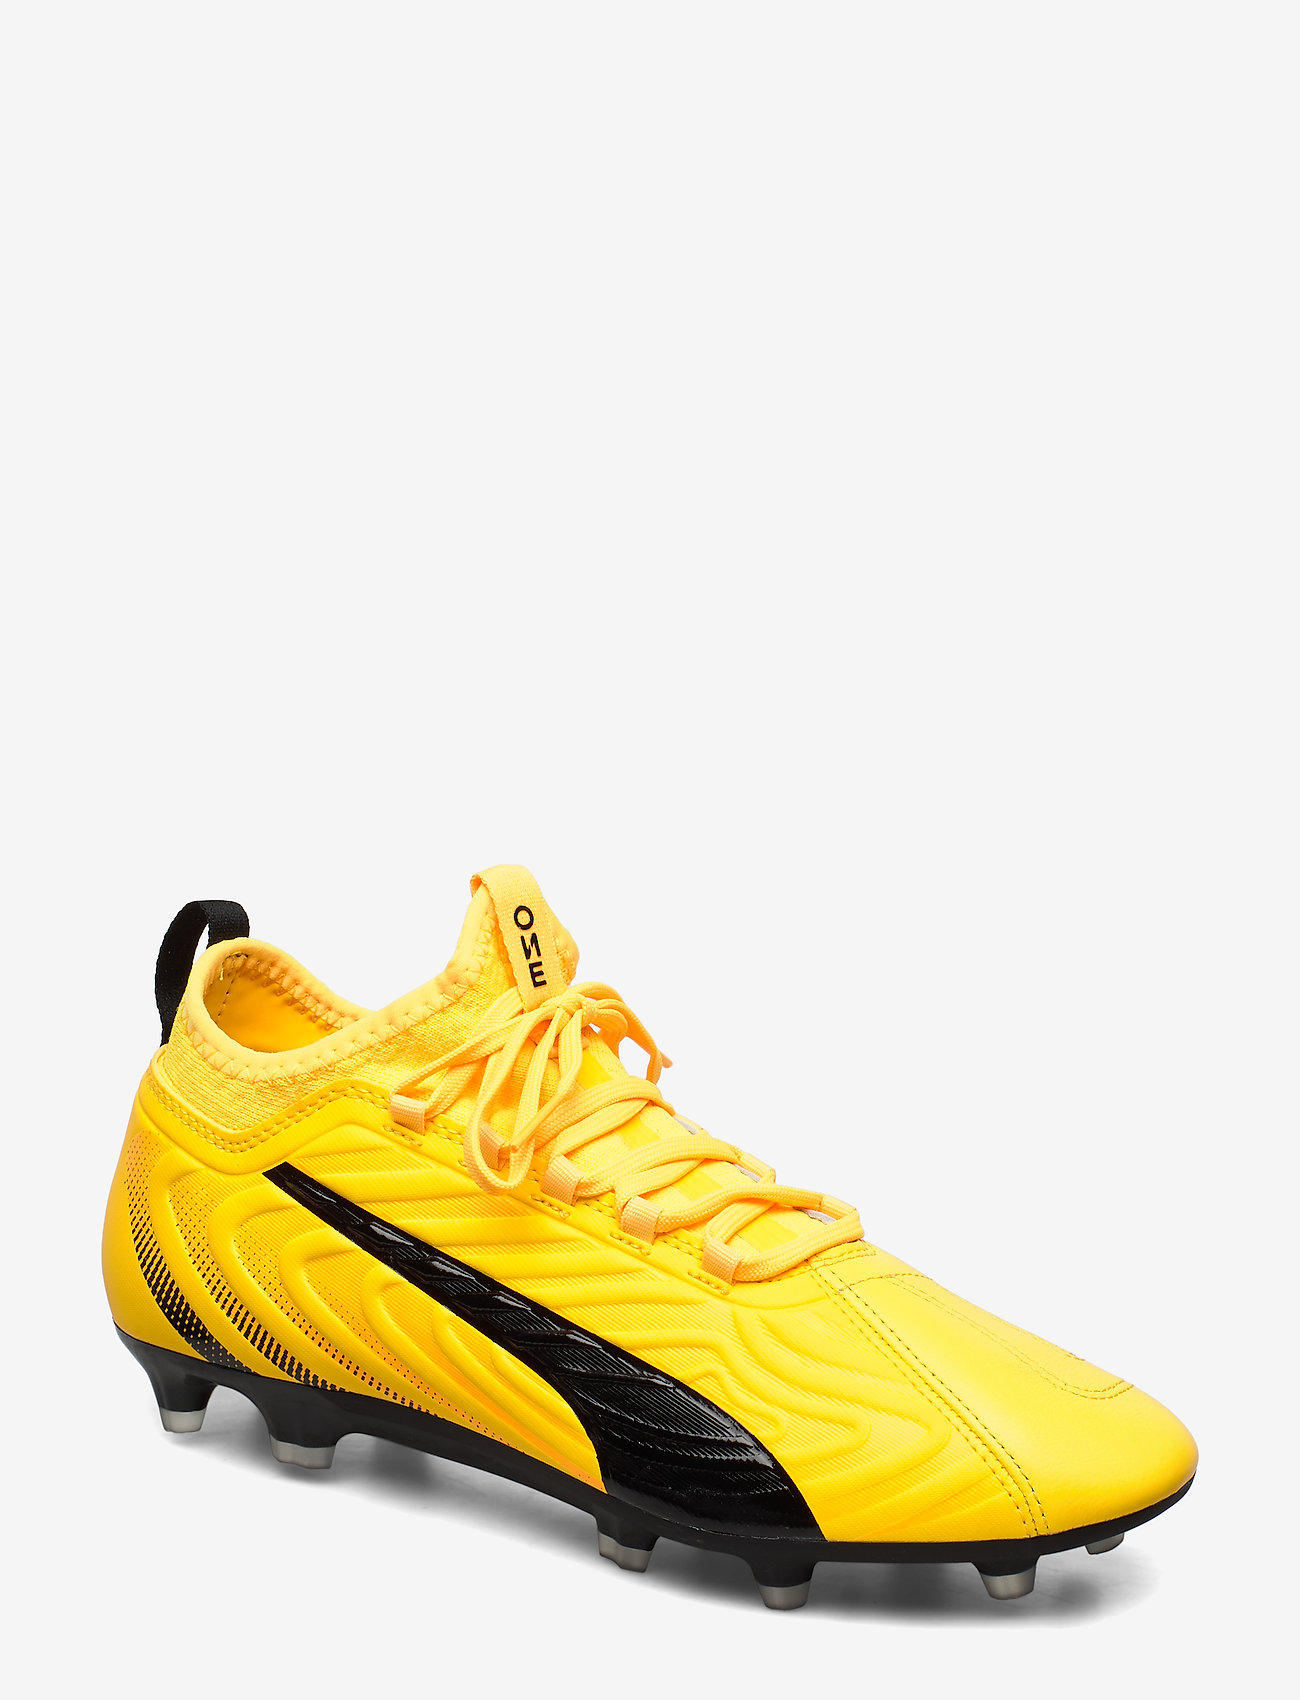 PUMA - PUMA ONE 20.3 FG/AG - jalkapallokengät - ultra yellow-puma black-orange aler - 0